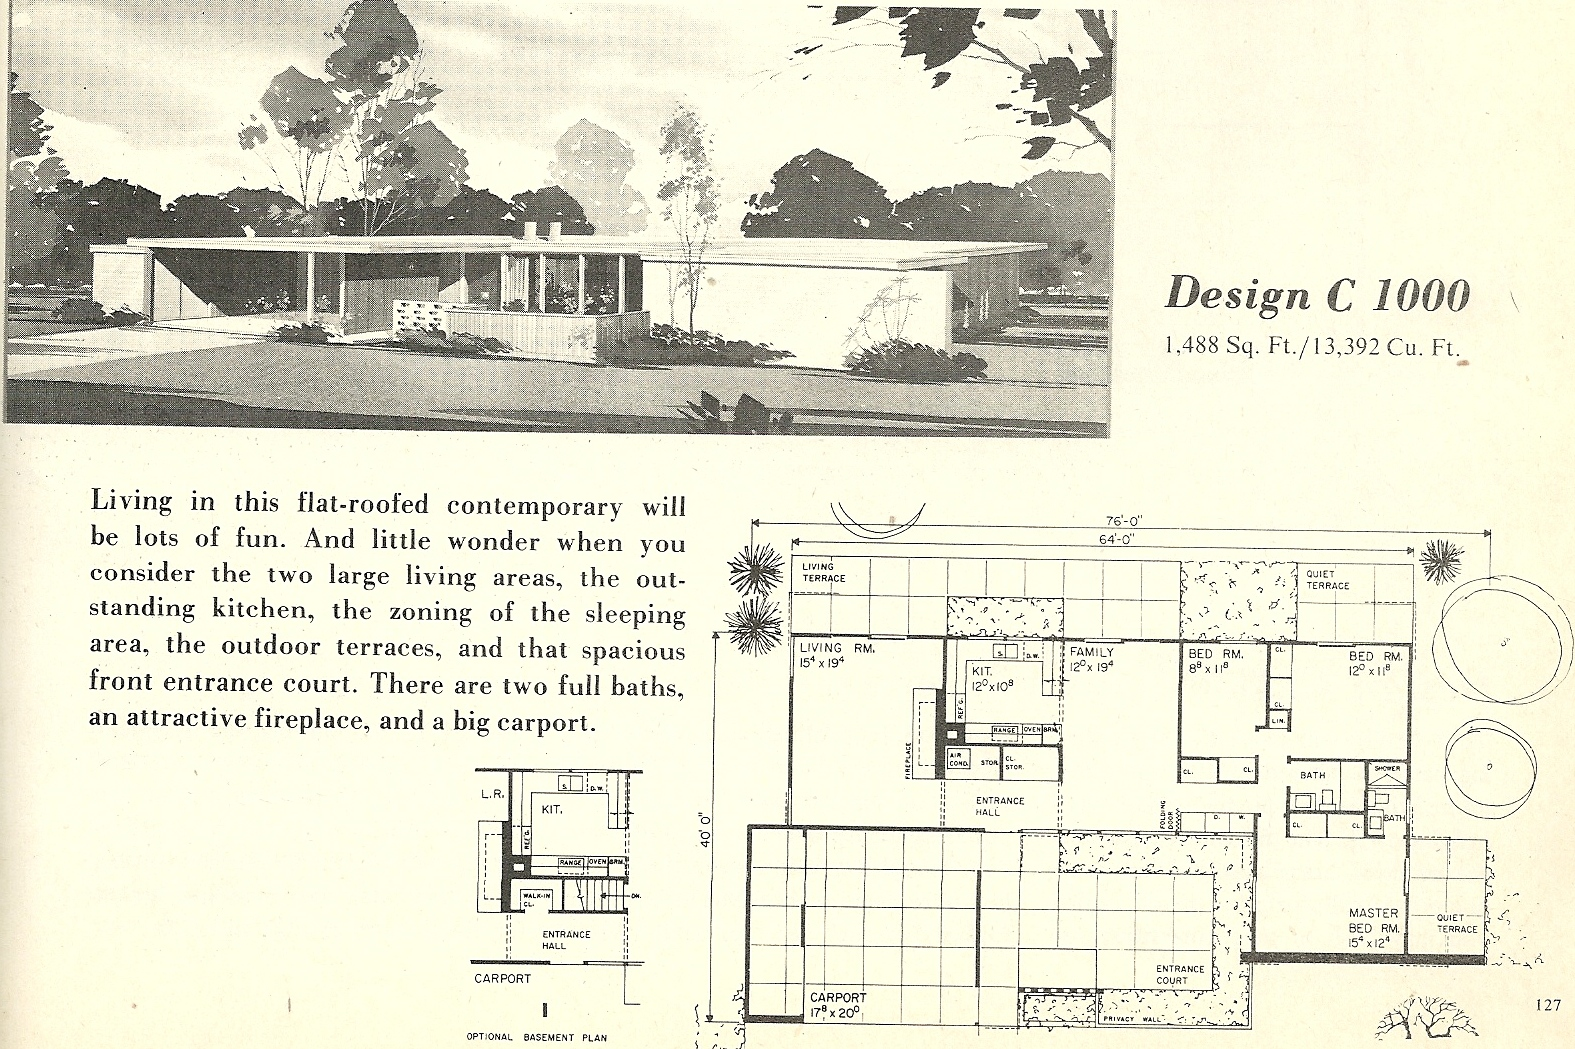 Vintage house plans 1000 antique alter ego for Mid century modern plans